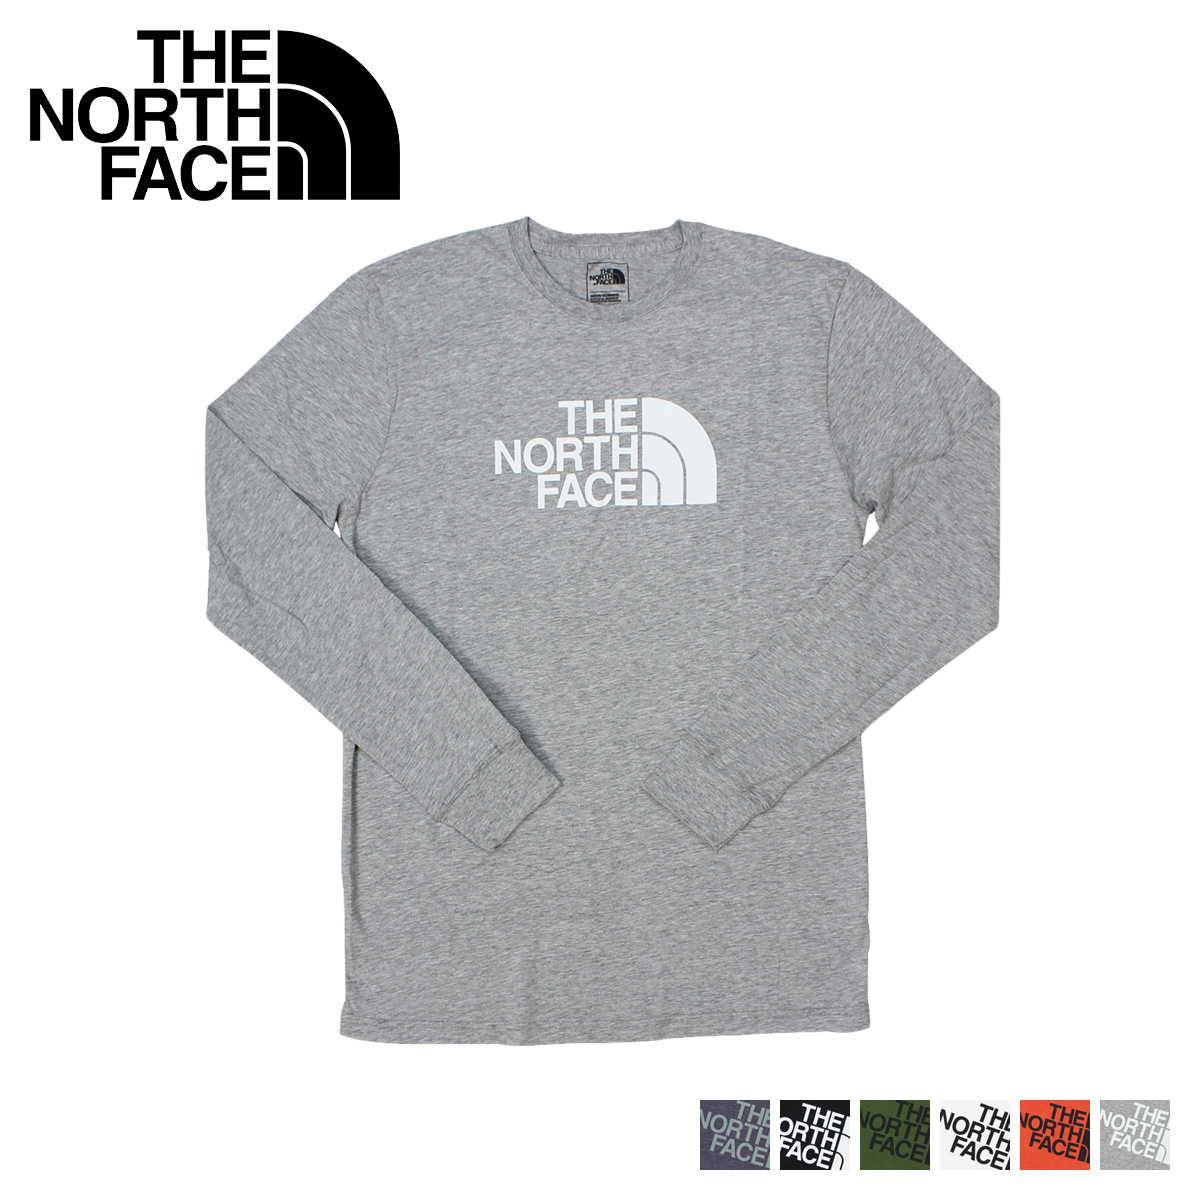 Sugar online shop rakuten global market laquosoonraquo laquo sugar online shop rakuten global market laquosoonraquo laquo107 days stockraquo north face the north face mens t shirt long sleeved ron t czy9 6 sciox Images